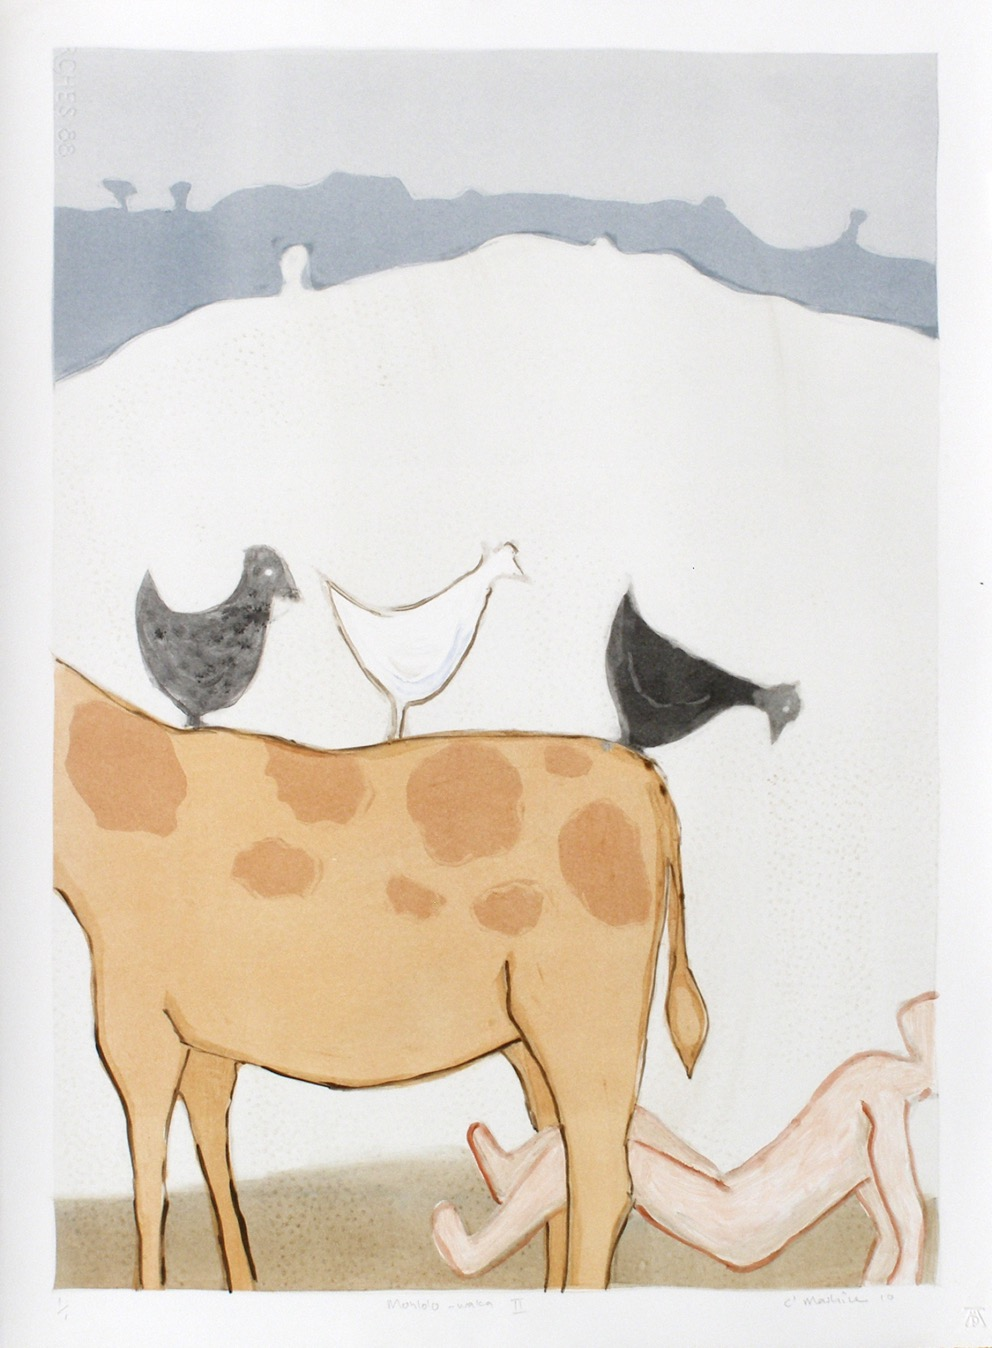 Bovine form with chickens on its back and a human figure below it set in a mountainous landscape